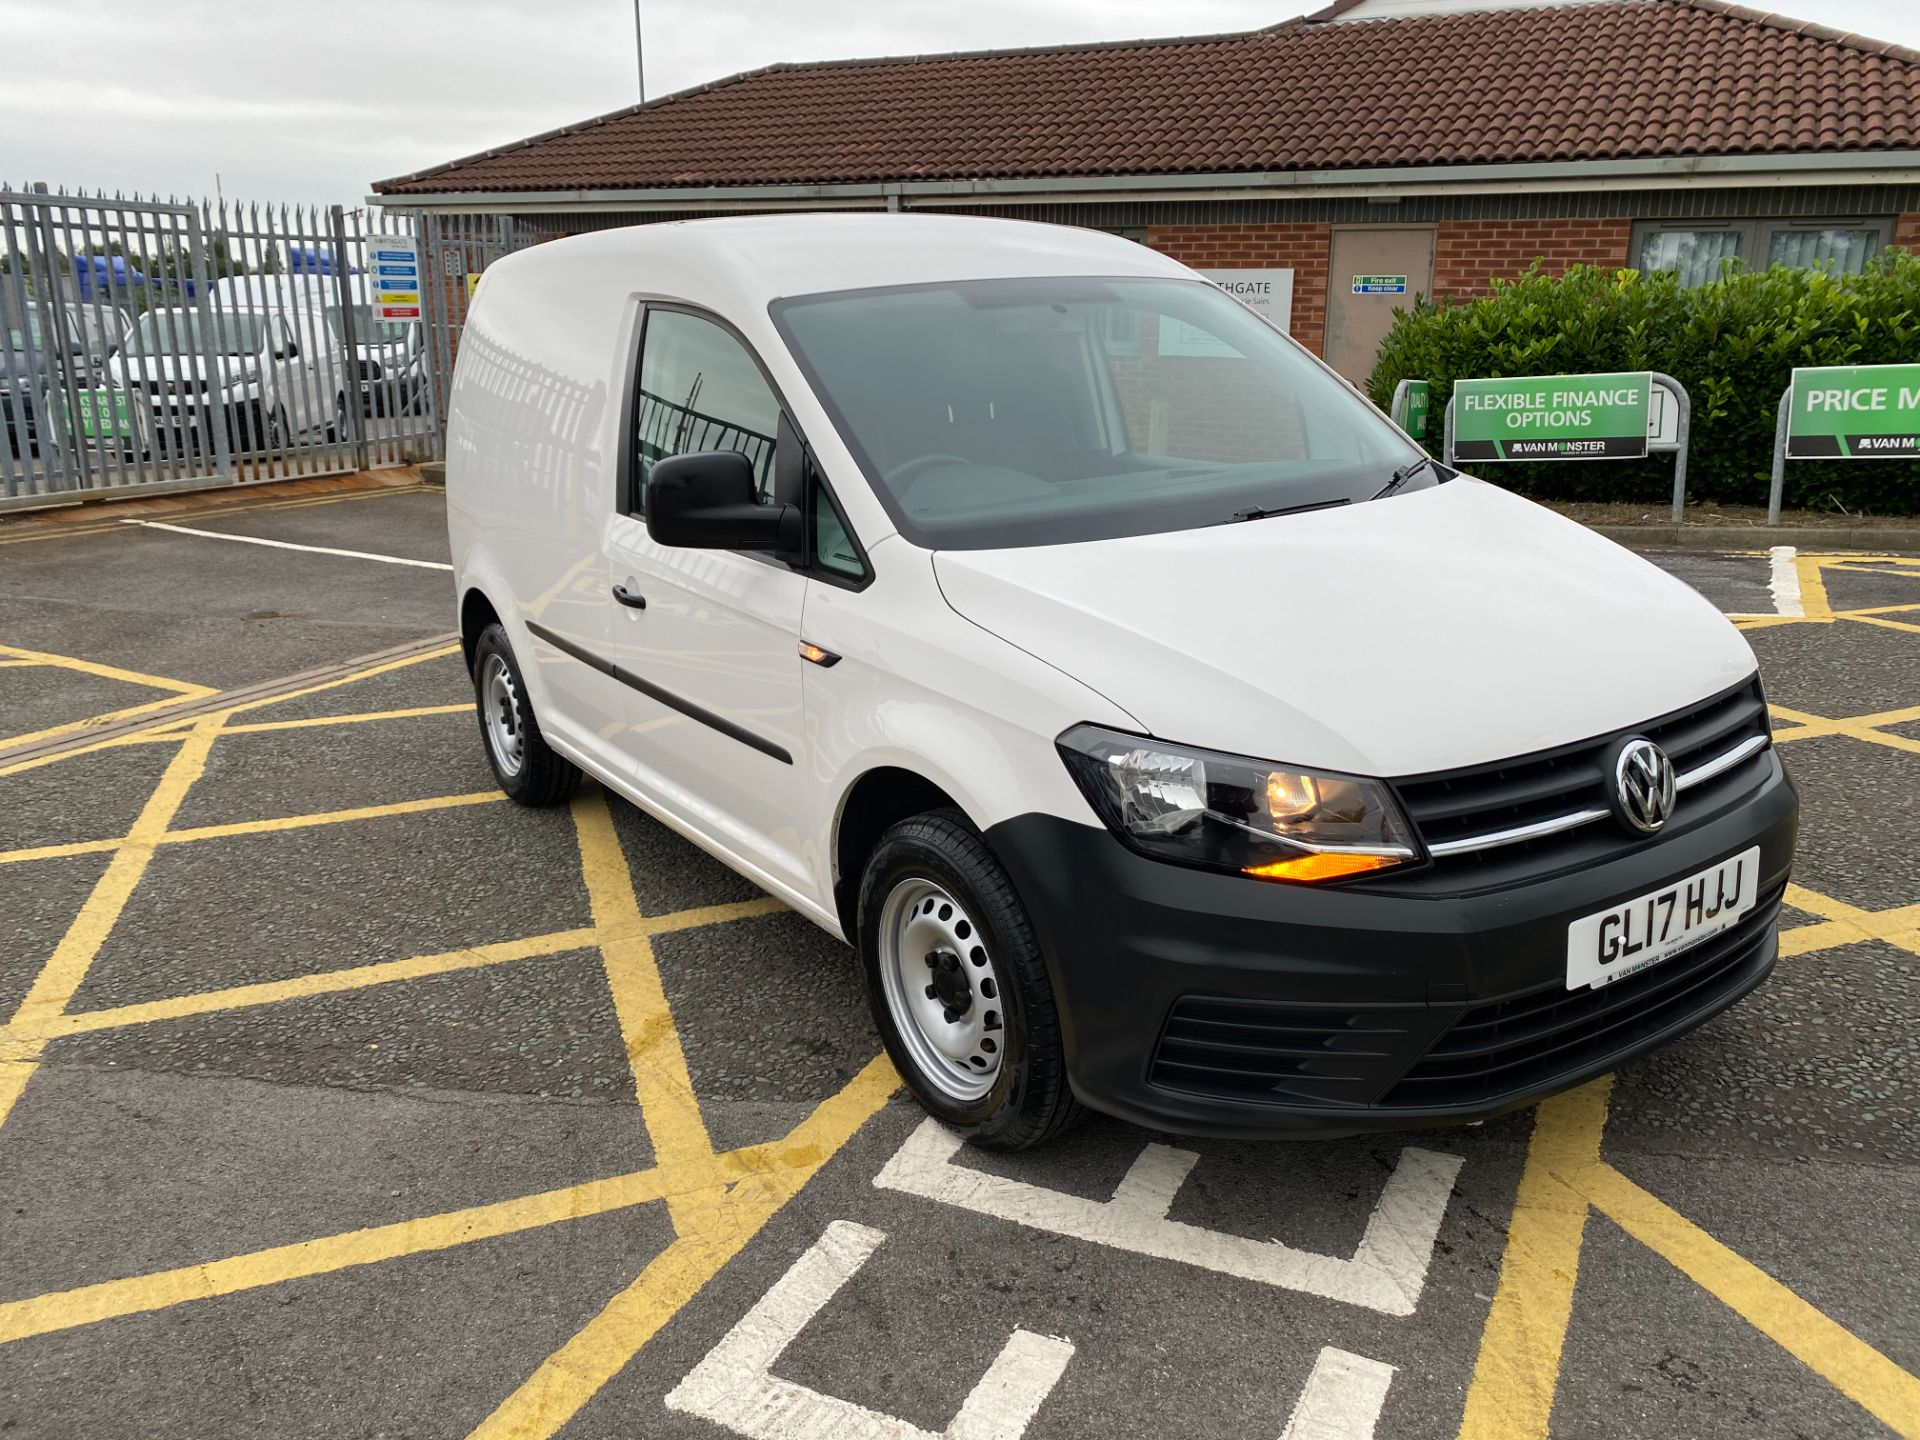 2017 Volkswagen Caddy 2.0 Tdi Bluemotion Tech 102Ps Startline Van (GL17HJJ)